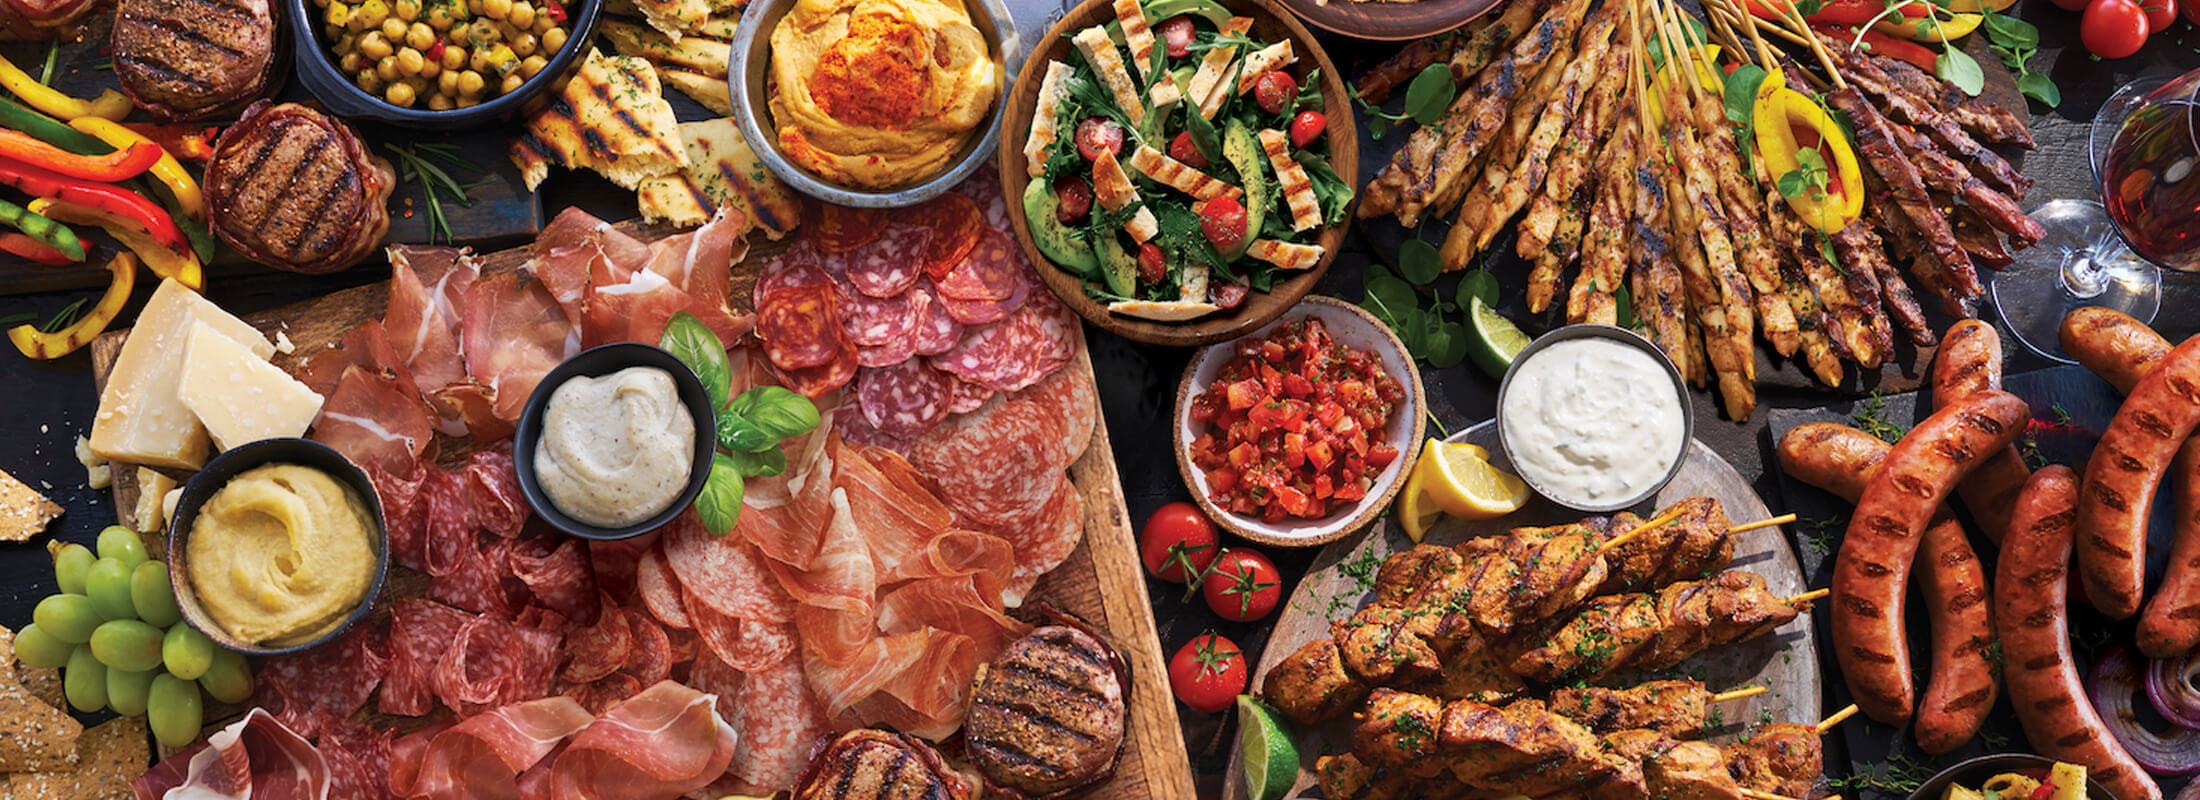 Marcangelo products - skewers, sausages, porchetta, strips, and meat products on table